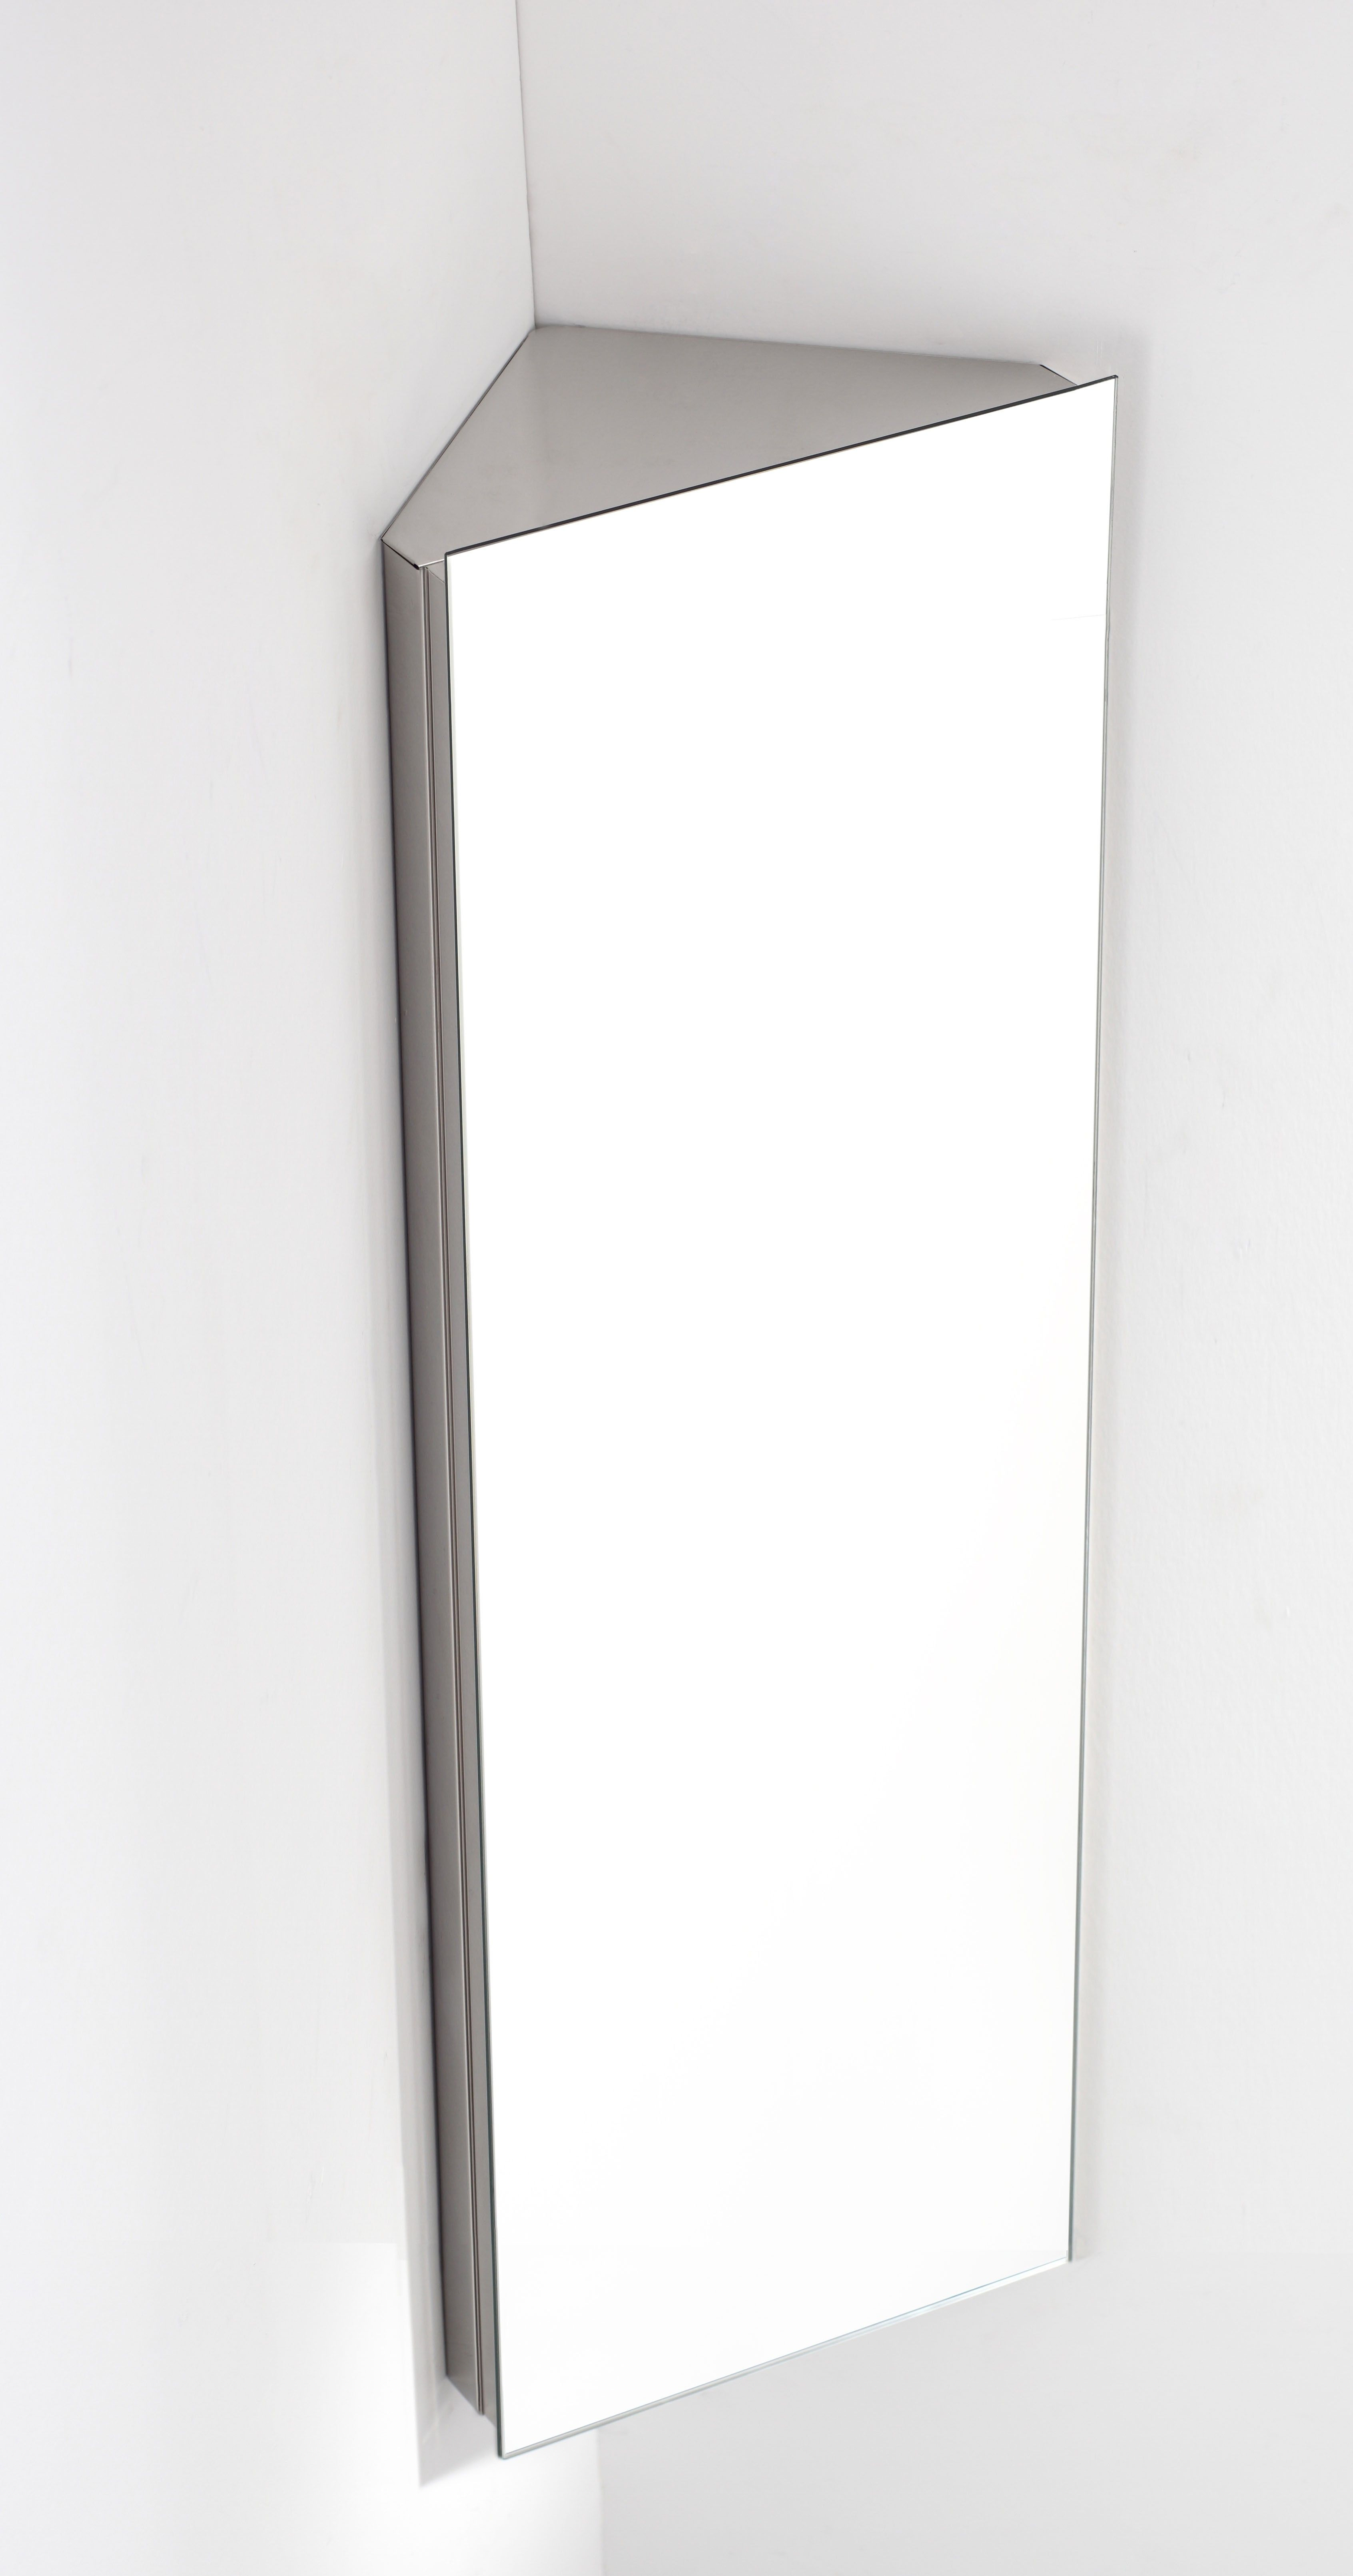 Reims 120cm Tall x 38cm Wide Single Door Corner Mirrored Bathroom ...